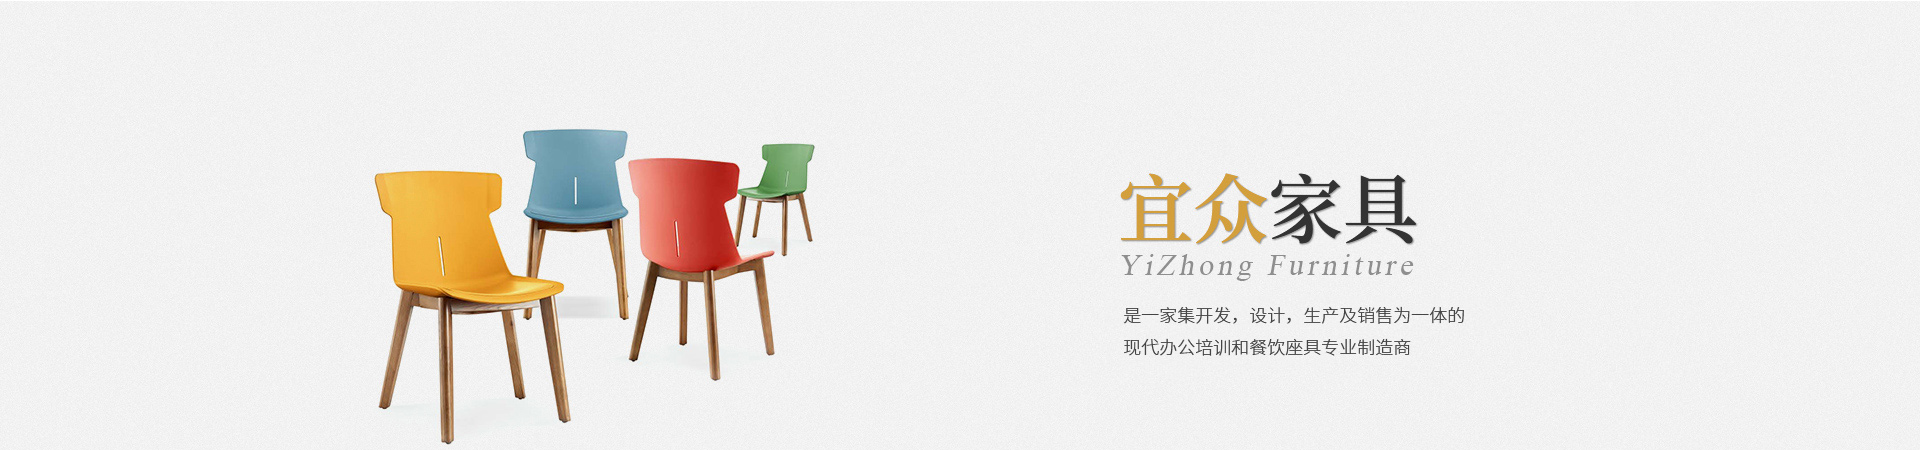 http://cn.yizhongfurniture.com/data/upload/202006/20200609144131_106.jpg